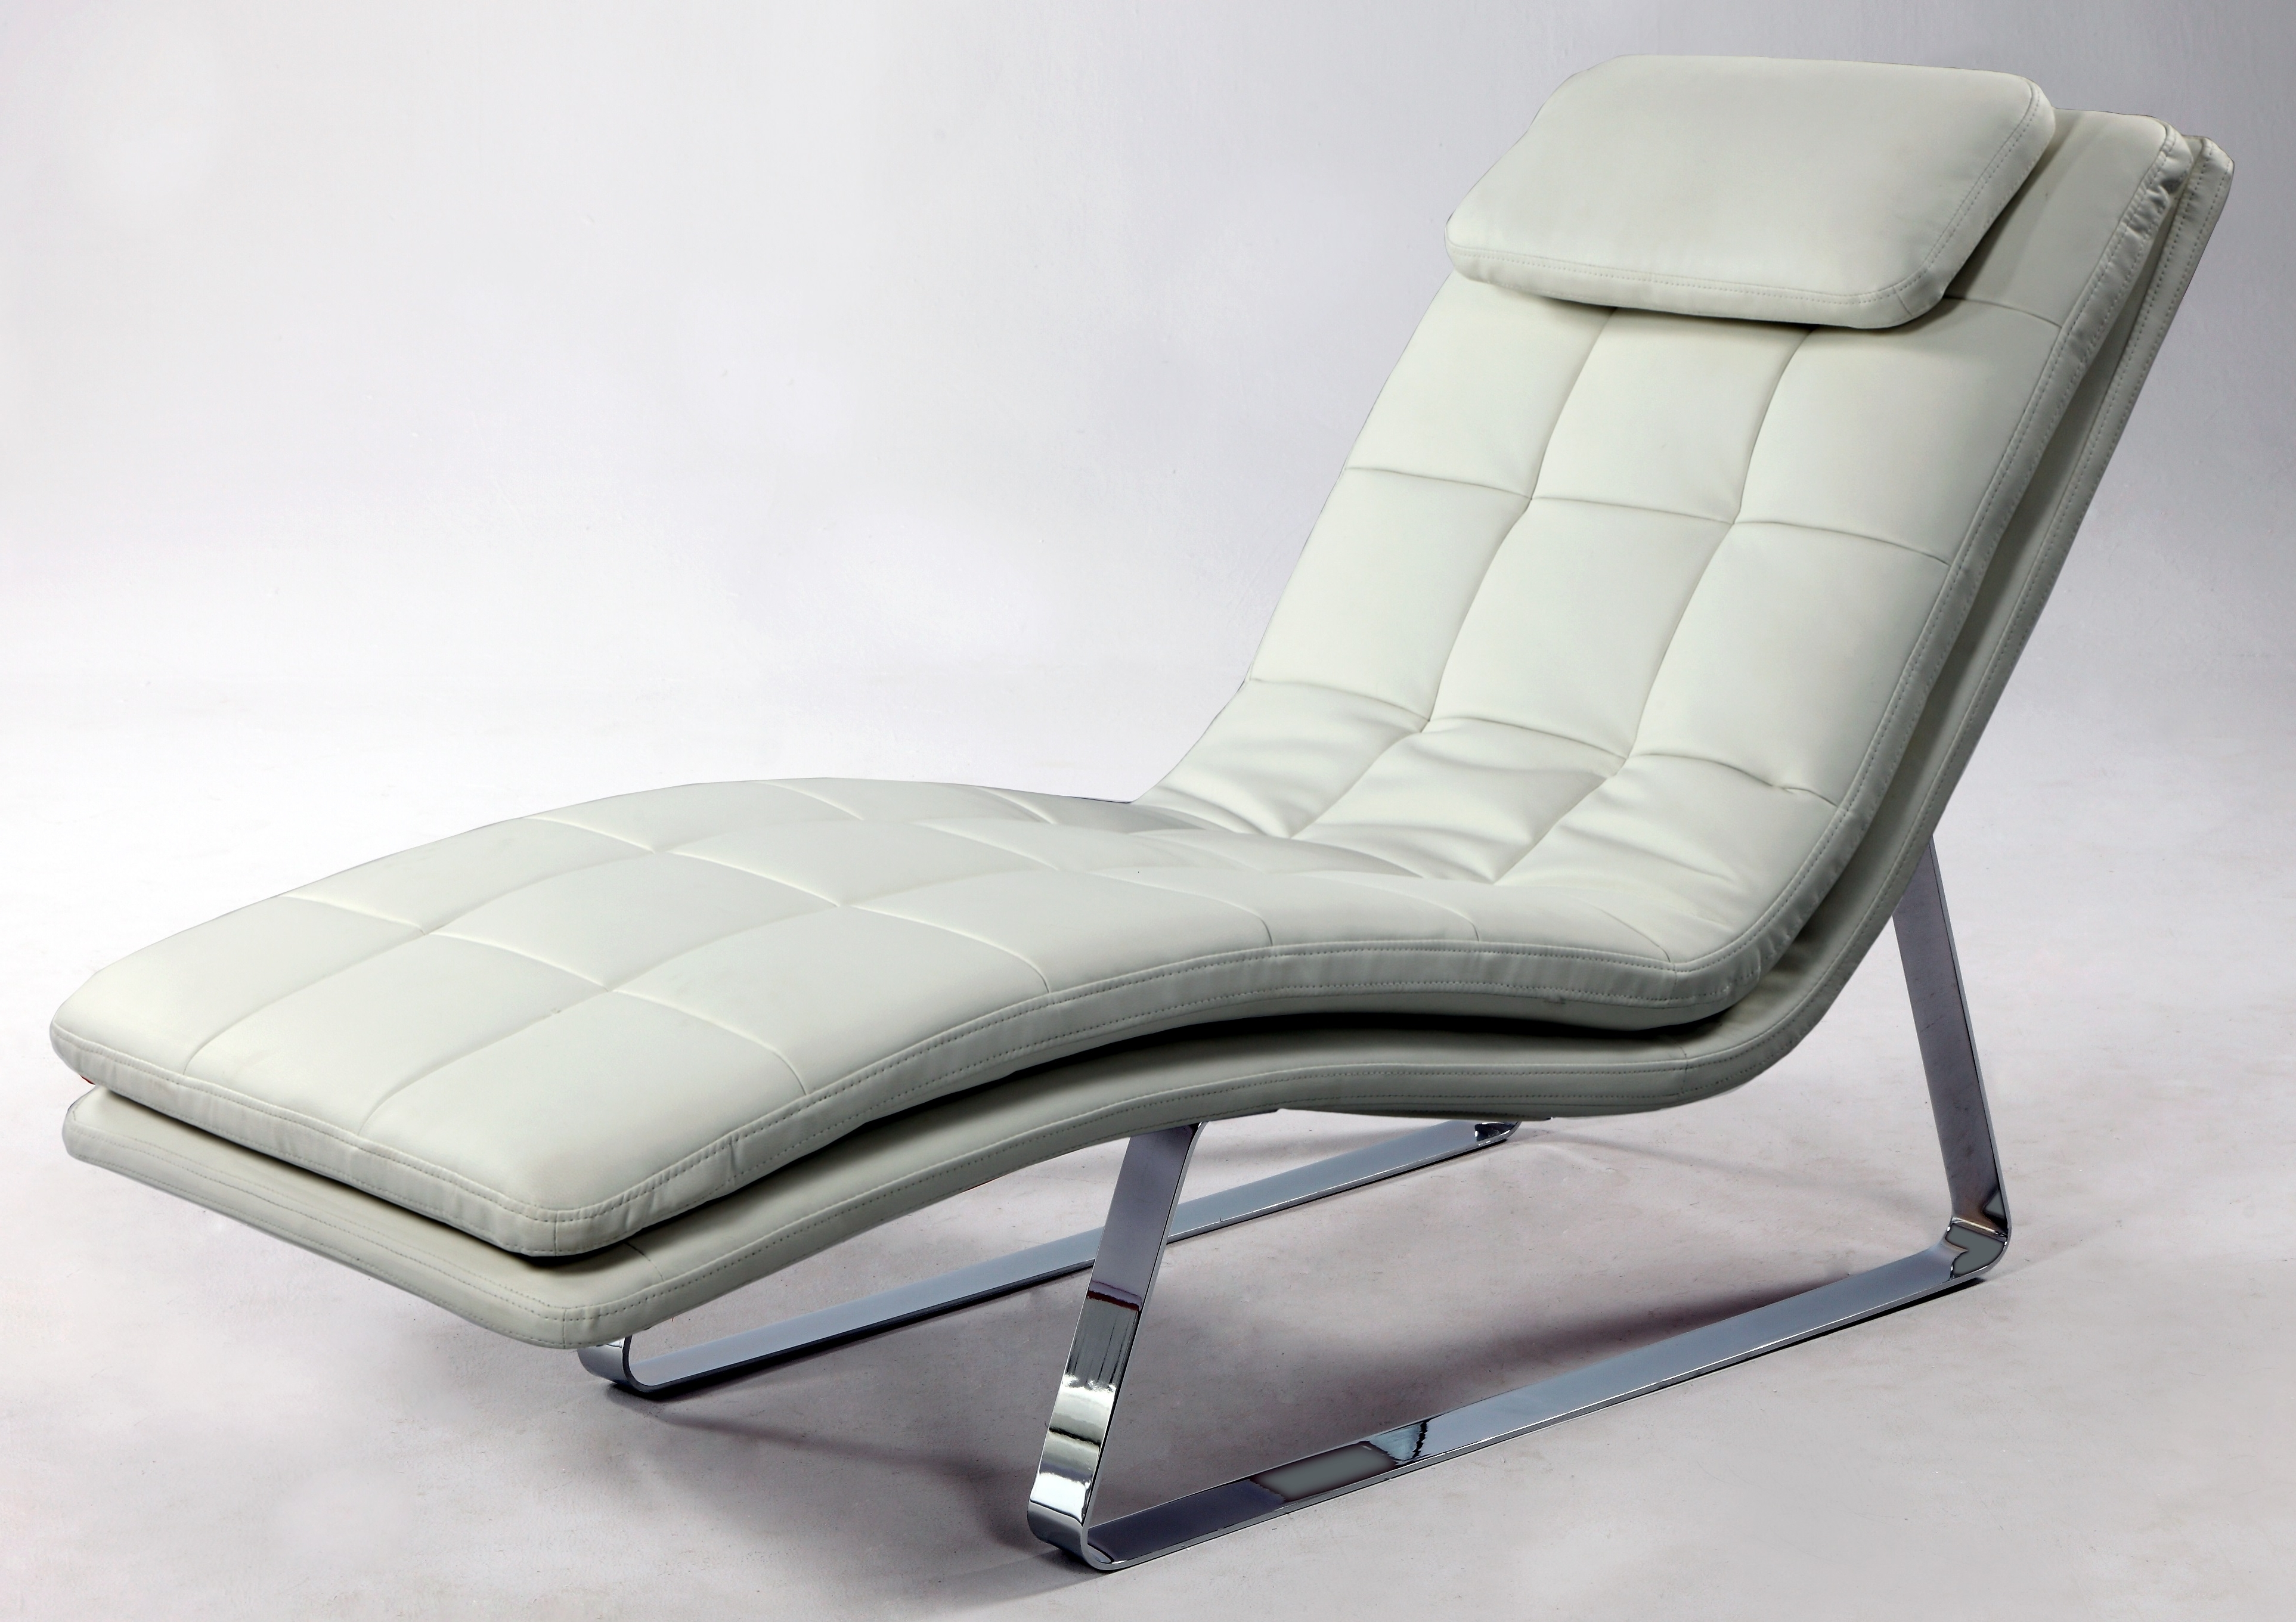 White Chaise Lounges Throughout Favorite Full Bonded Leather Tufted Chaise Lounge With Chrome Legs New York (View 13 of 15)